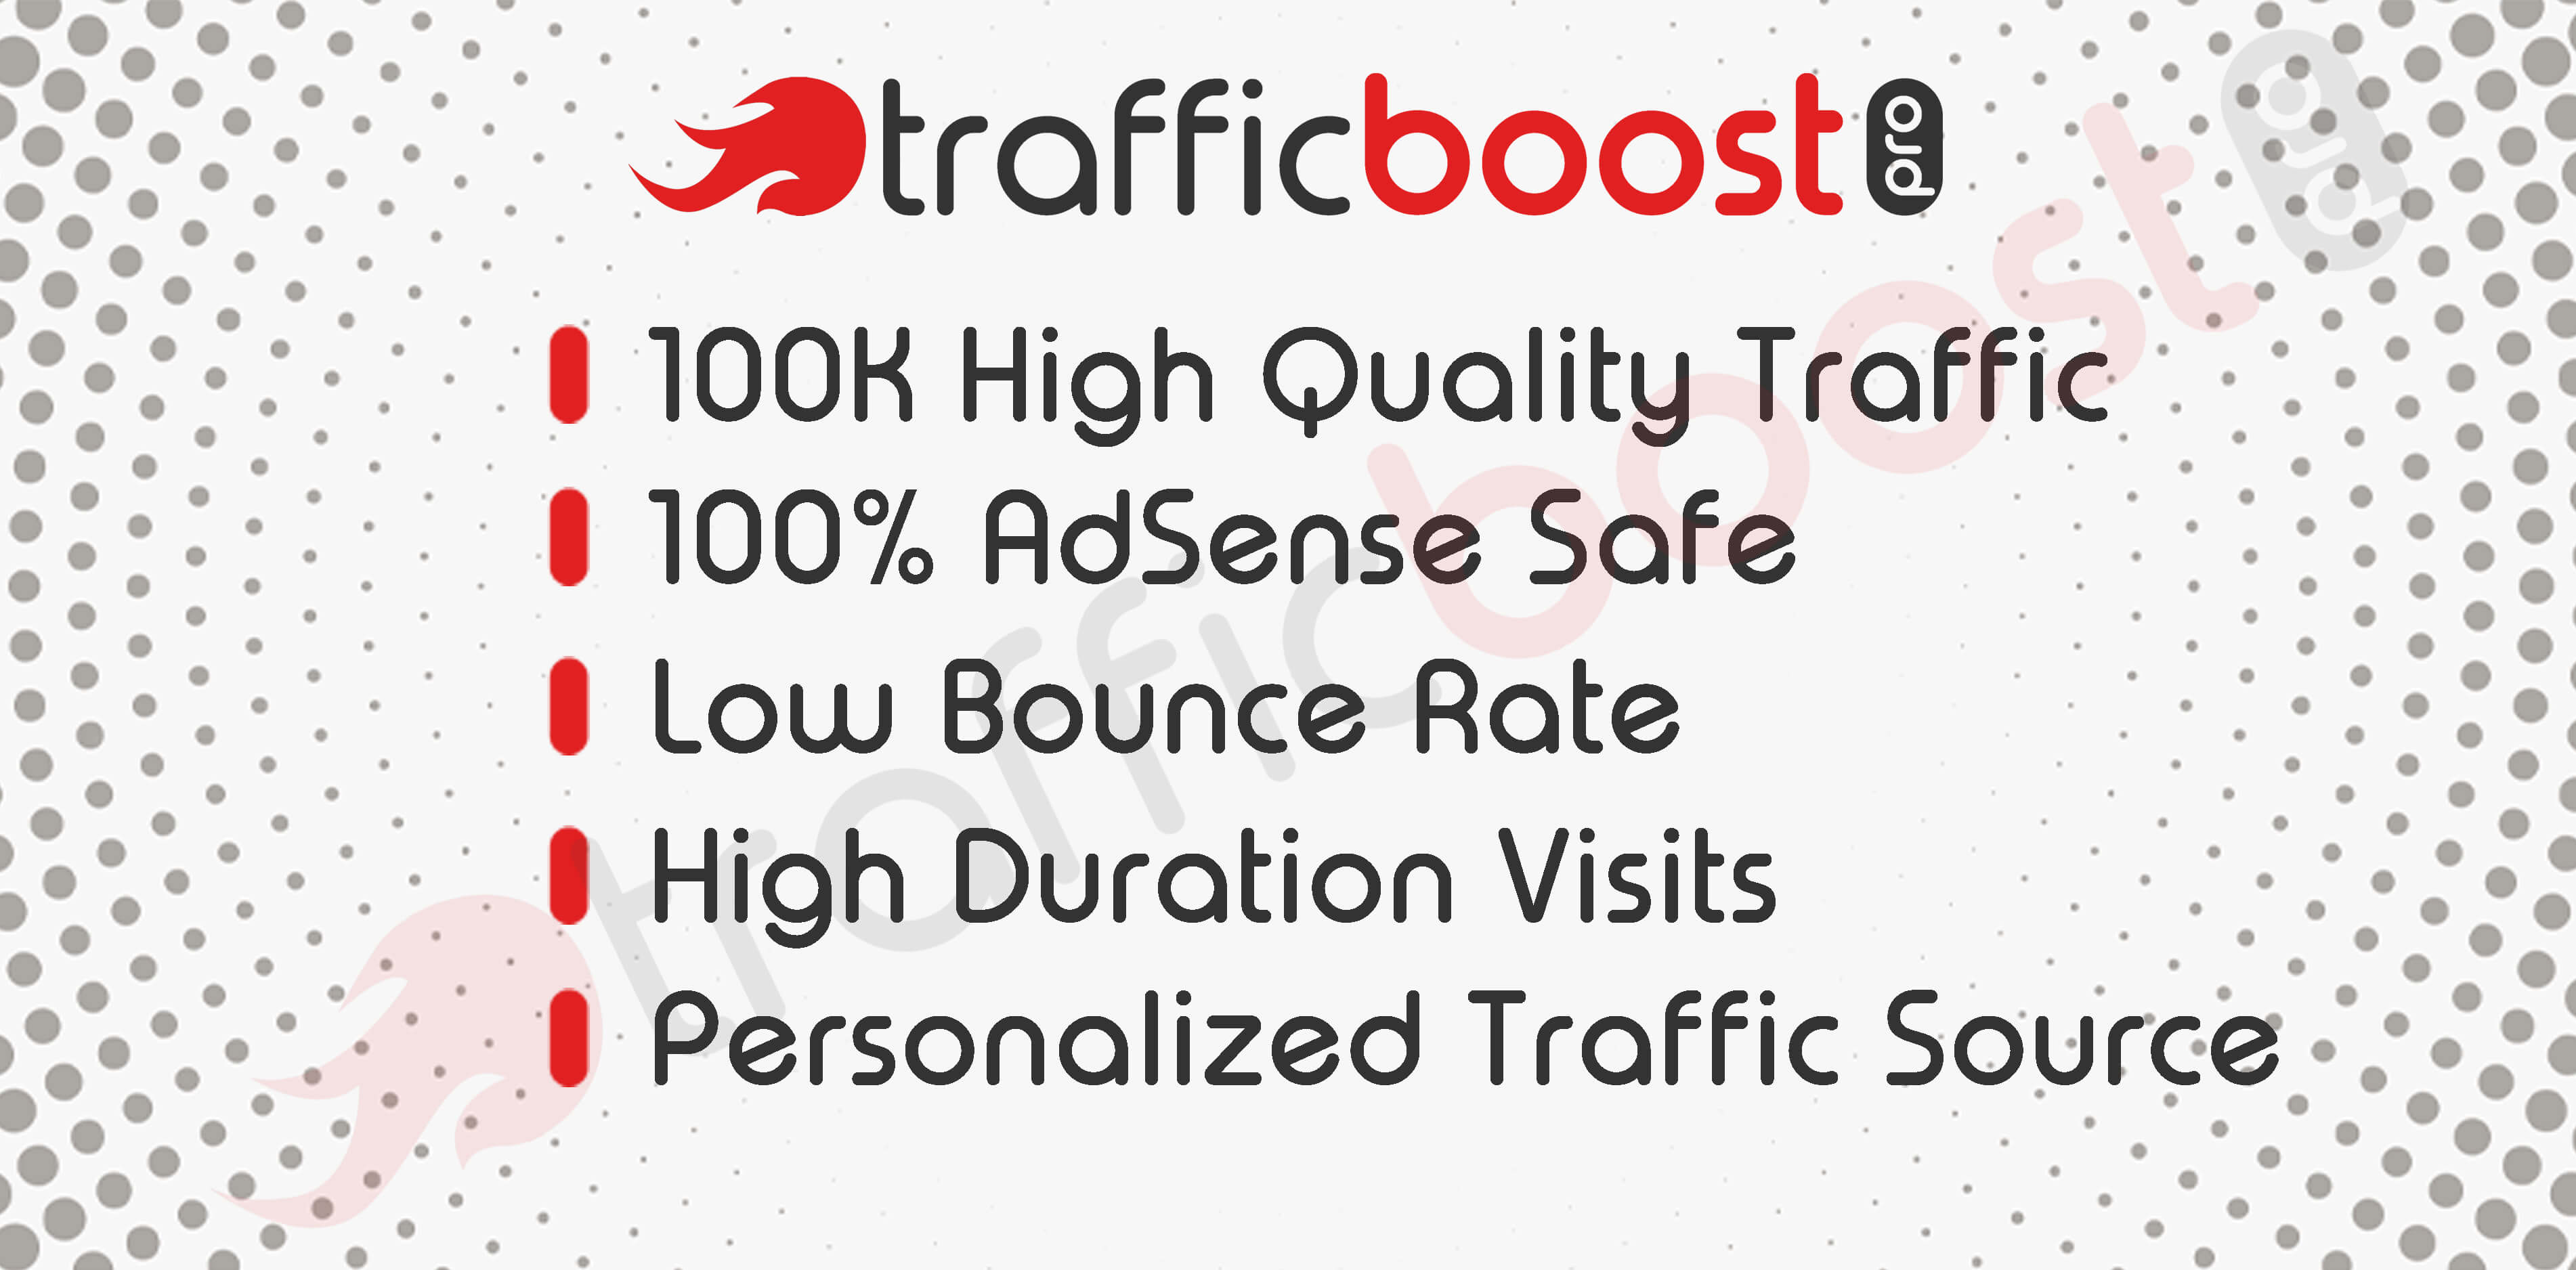 Adsense Safe 100K Search Engine and Social Media Traffic